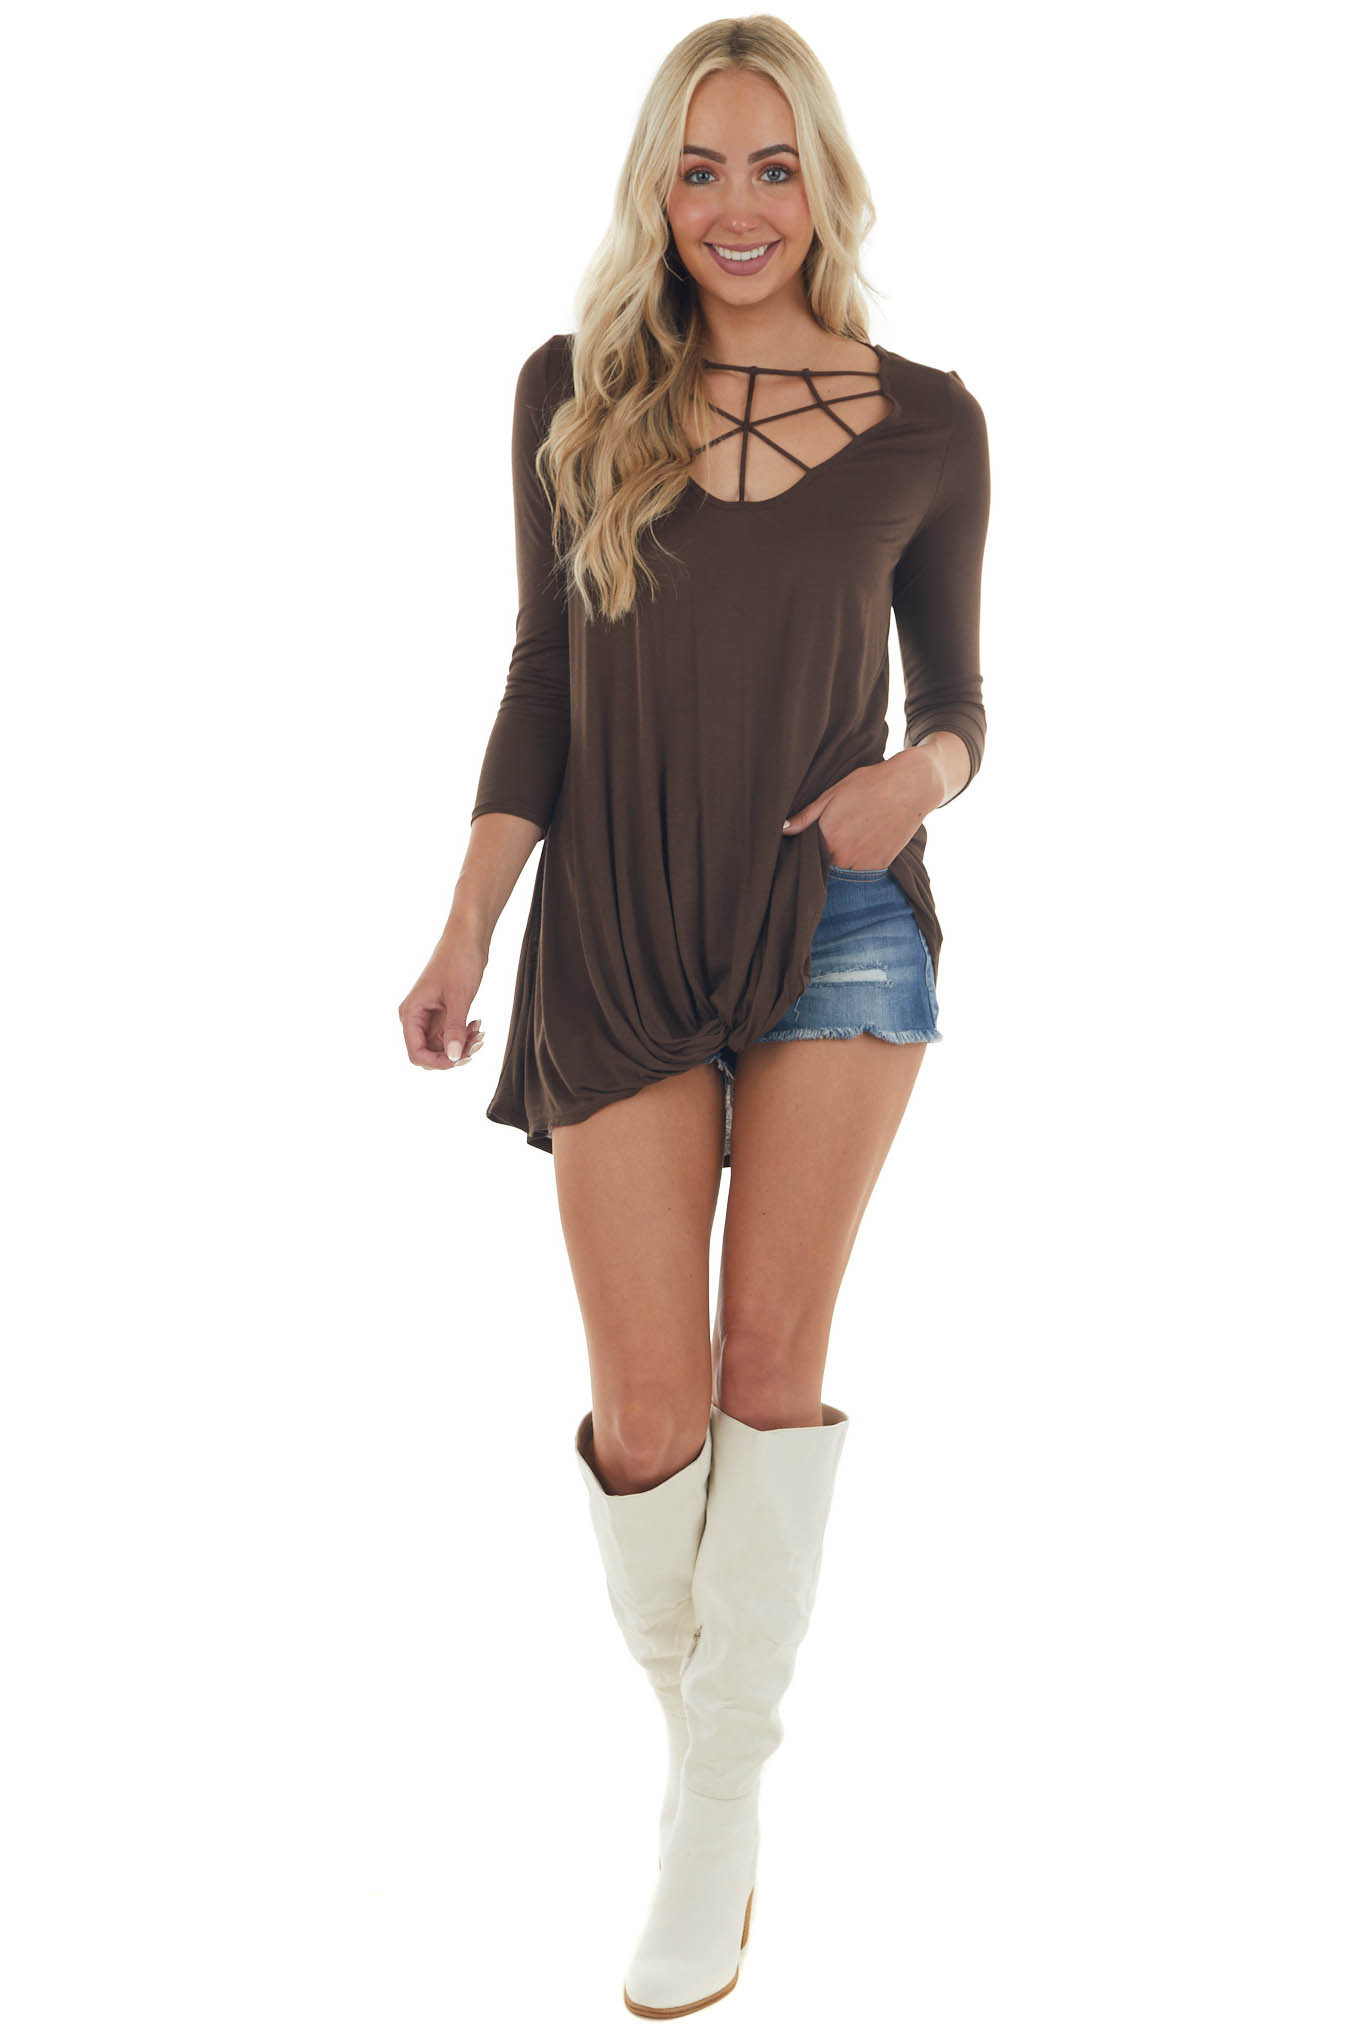 Chocolate Brown 3/4 Sleeve Knit Top with Caged Neckline